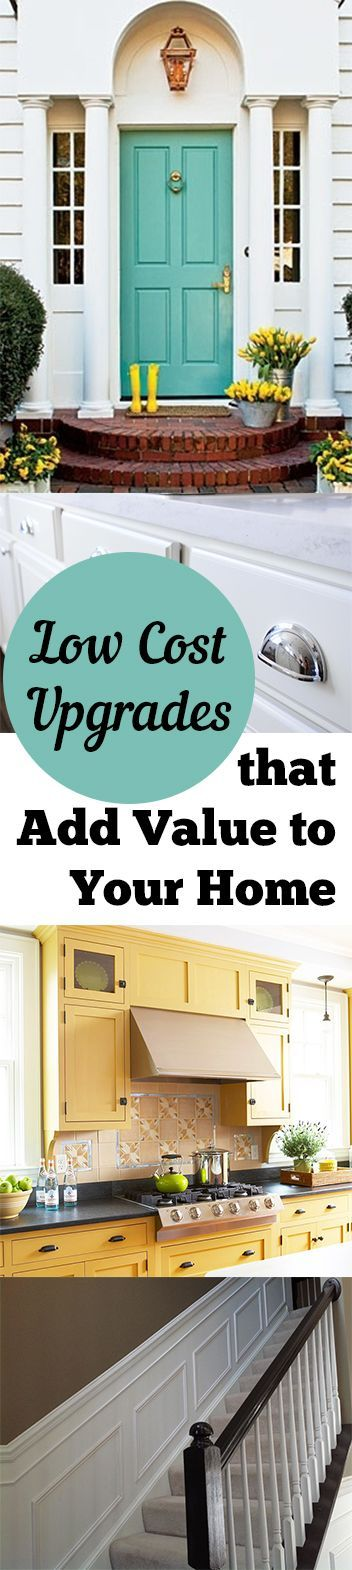 Low Cost Upgrades that Add Value to Your Home. DIY, DIY home projects, home décor, home, dream home, DIY. projects, home improvement, inexpensive home improvement, cheap home DIY.